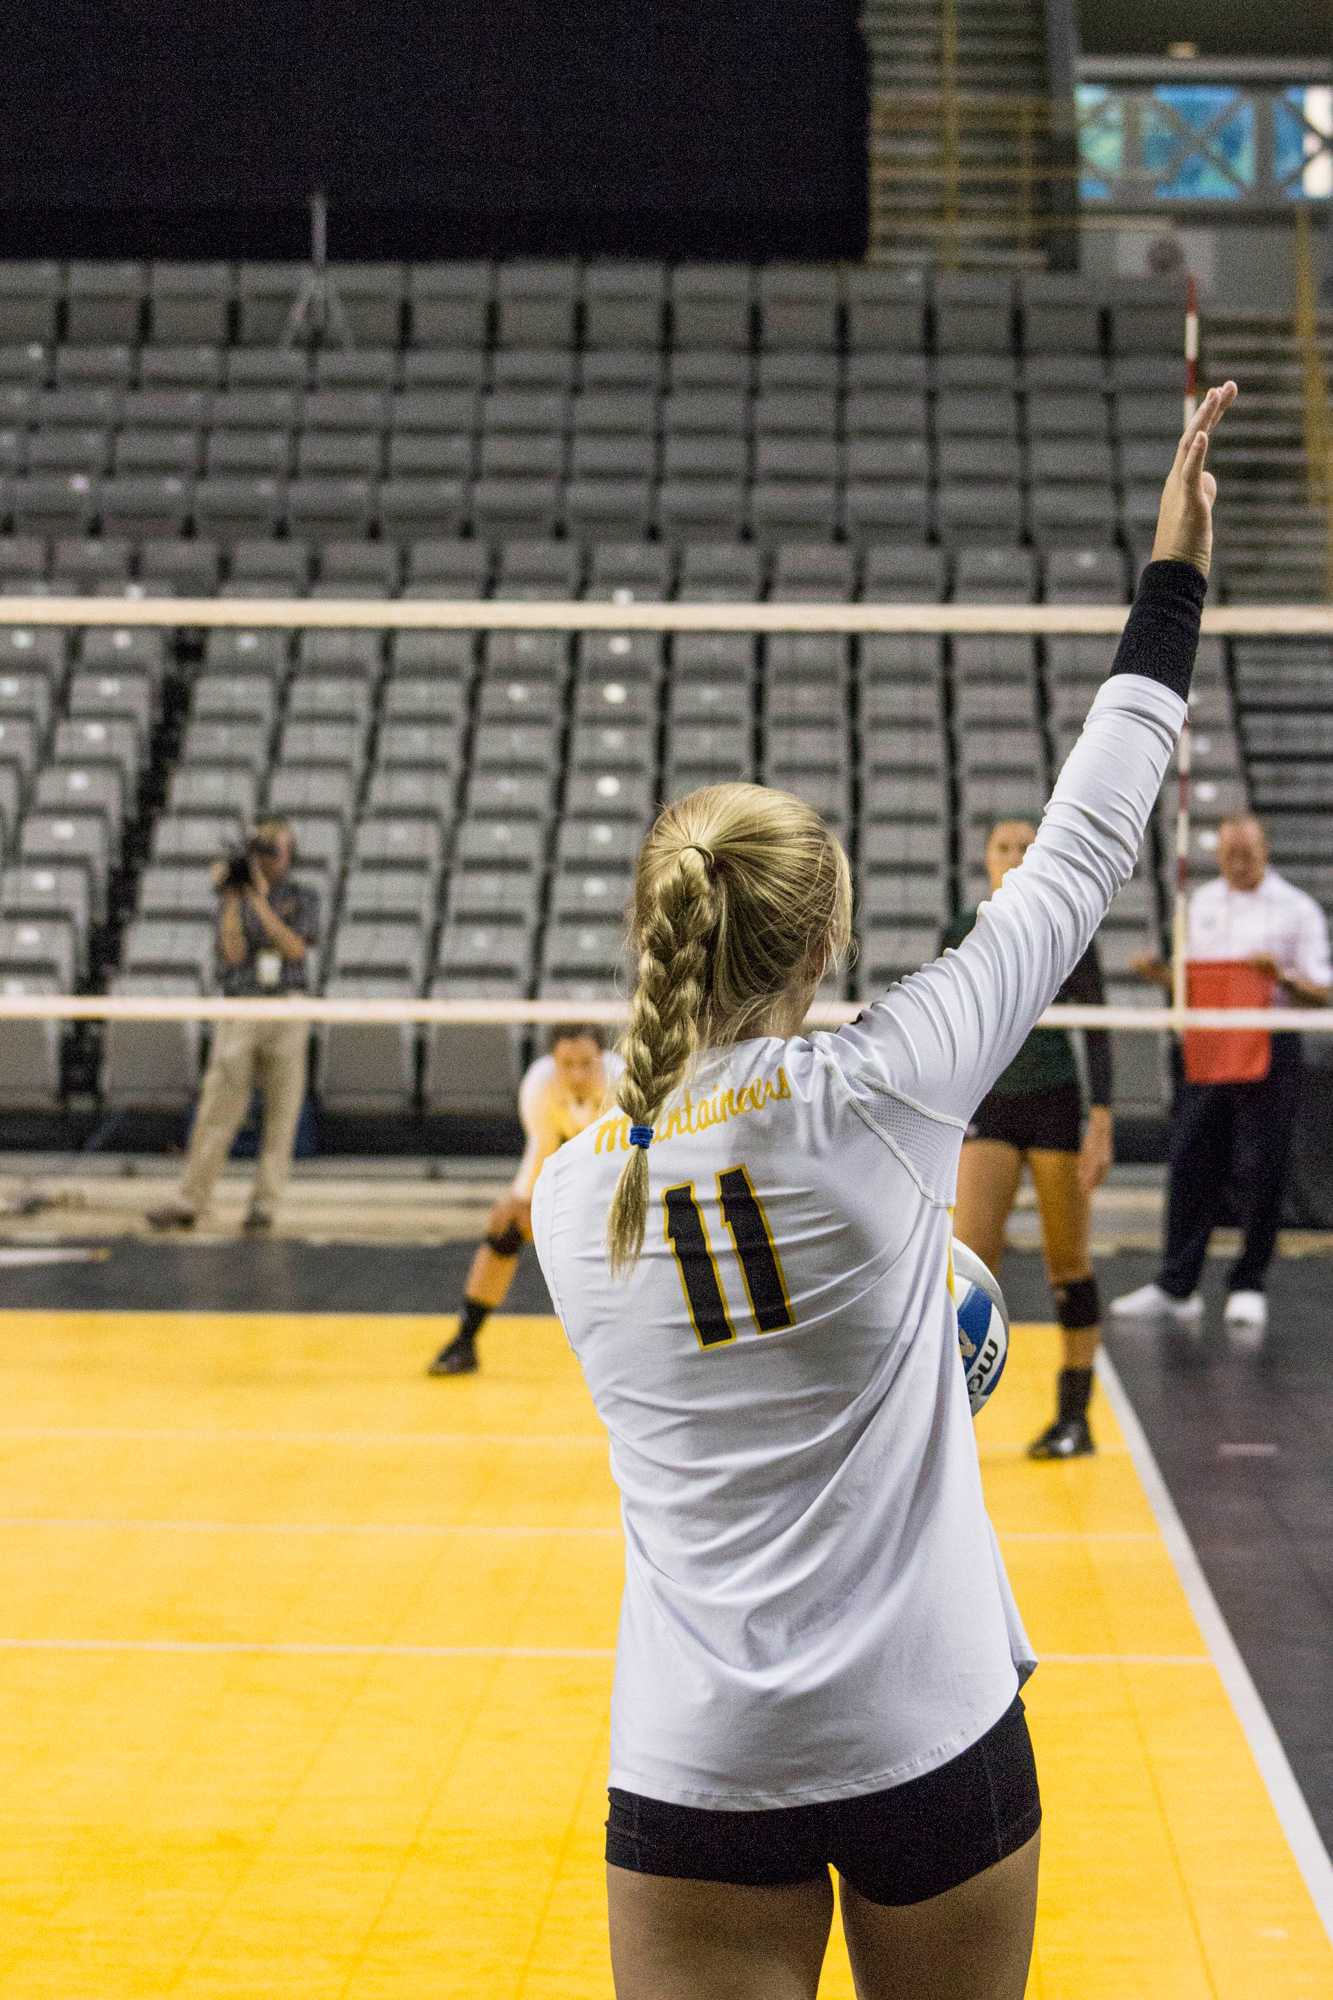 Freshman+outside+hitter+Emma+Longley+prepares+to+serve+the+ball+in+a+game+against+Ohio+on+Sept.+3.+App+lost+3-0.